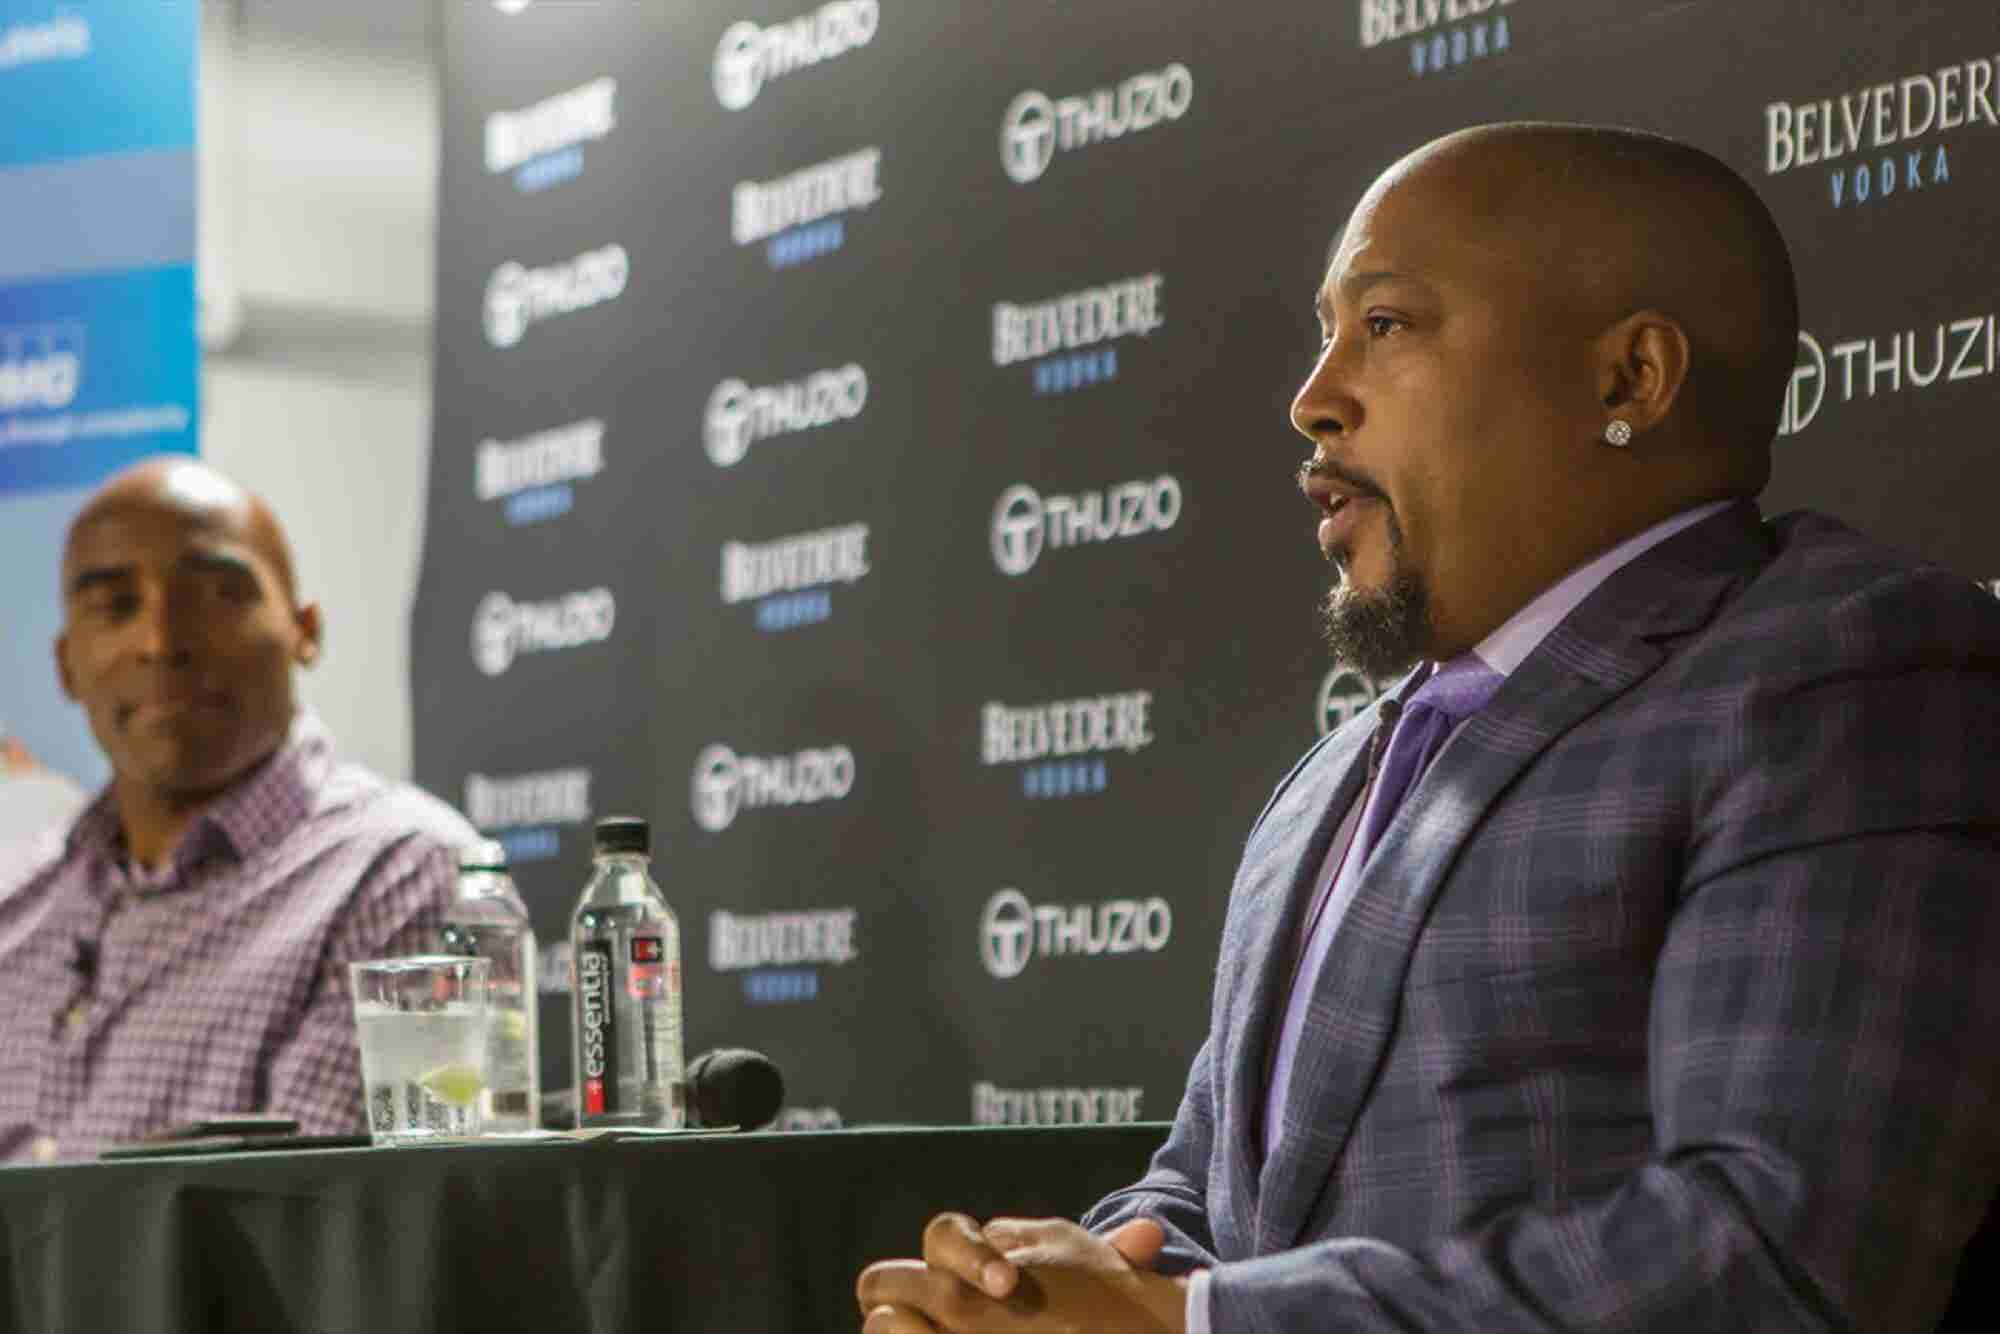 Daymond John's Best, Surprising Advice for Entrepreneurs? Get a 9 to 5 Job.